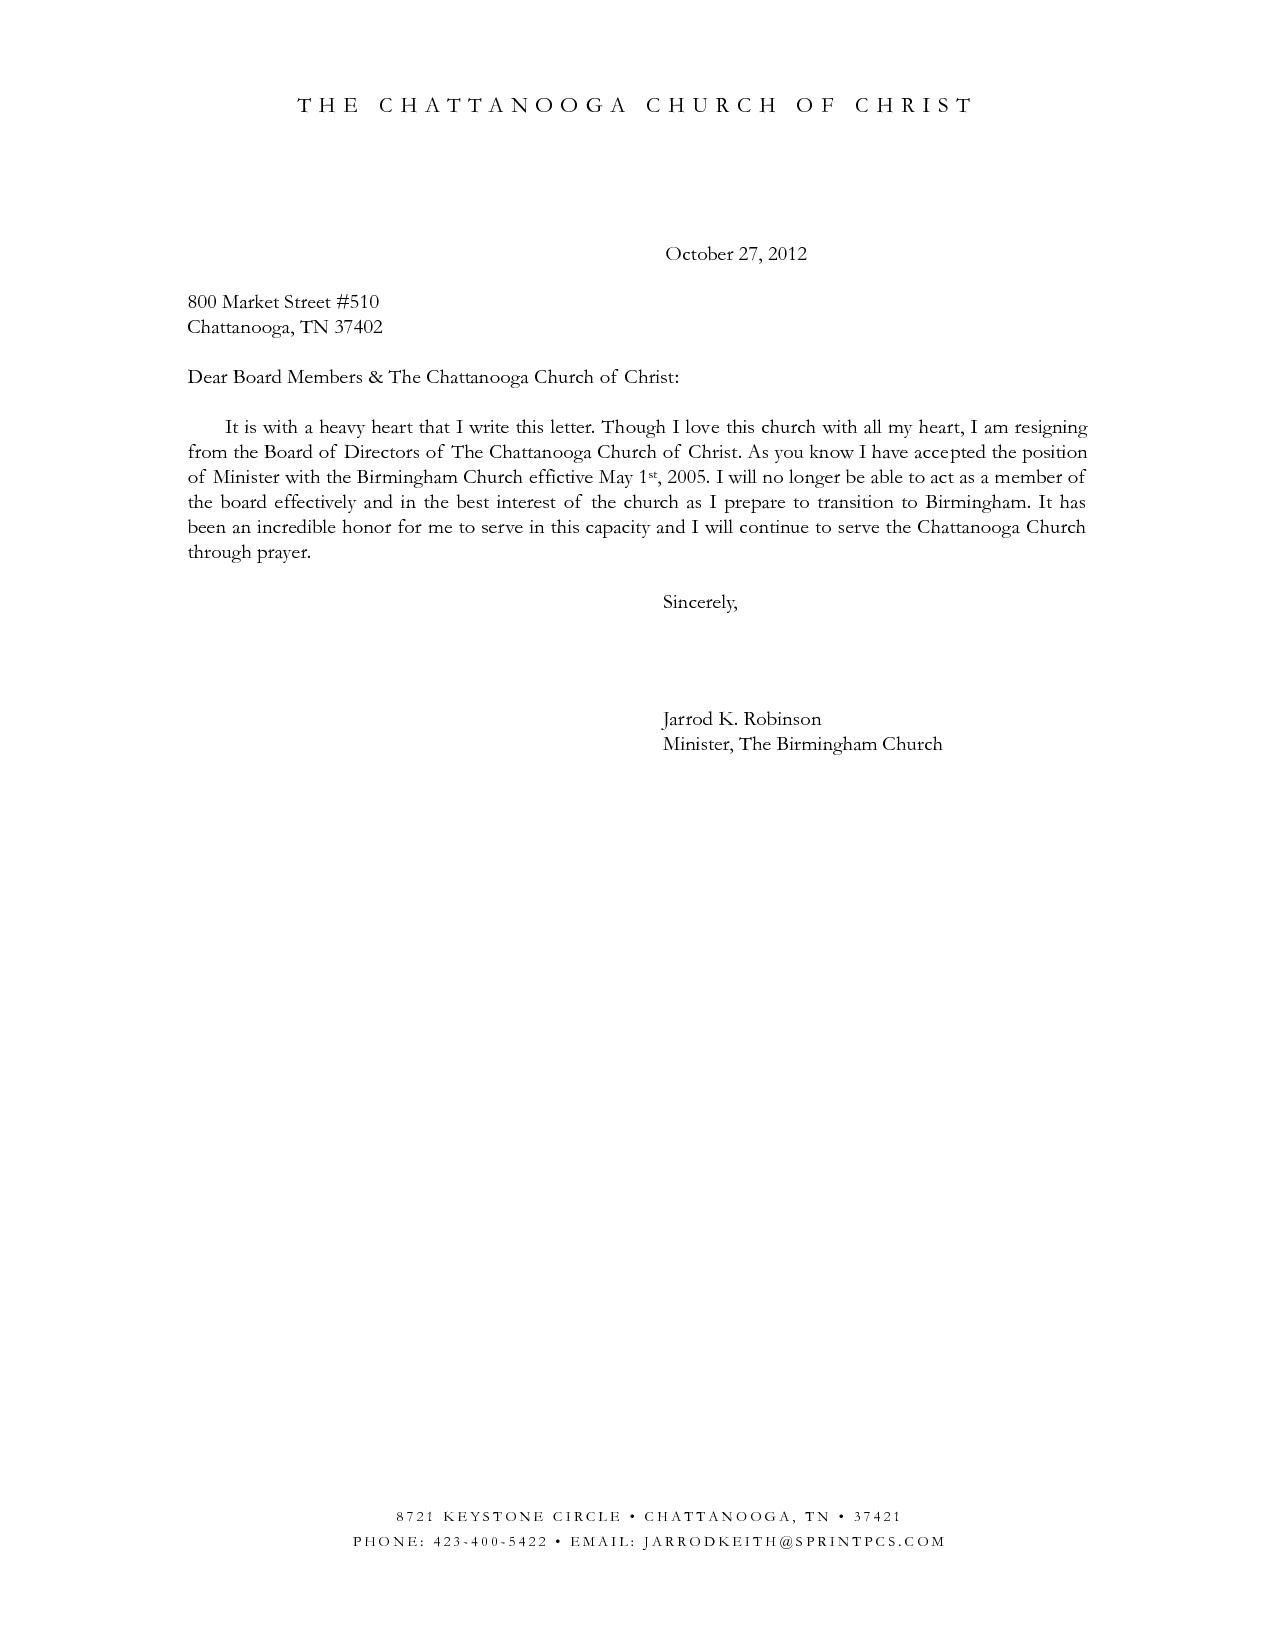 Resignation Letter Template Word Free - Free Resignation Letter Template Word Lovely Resignation Letter